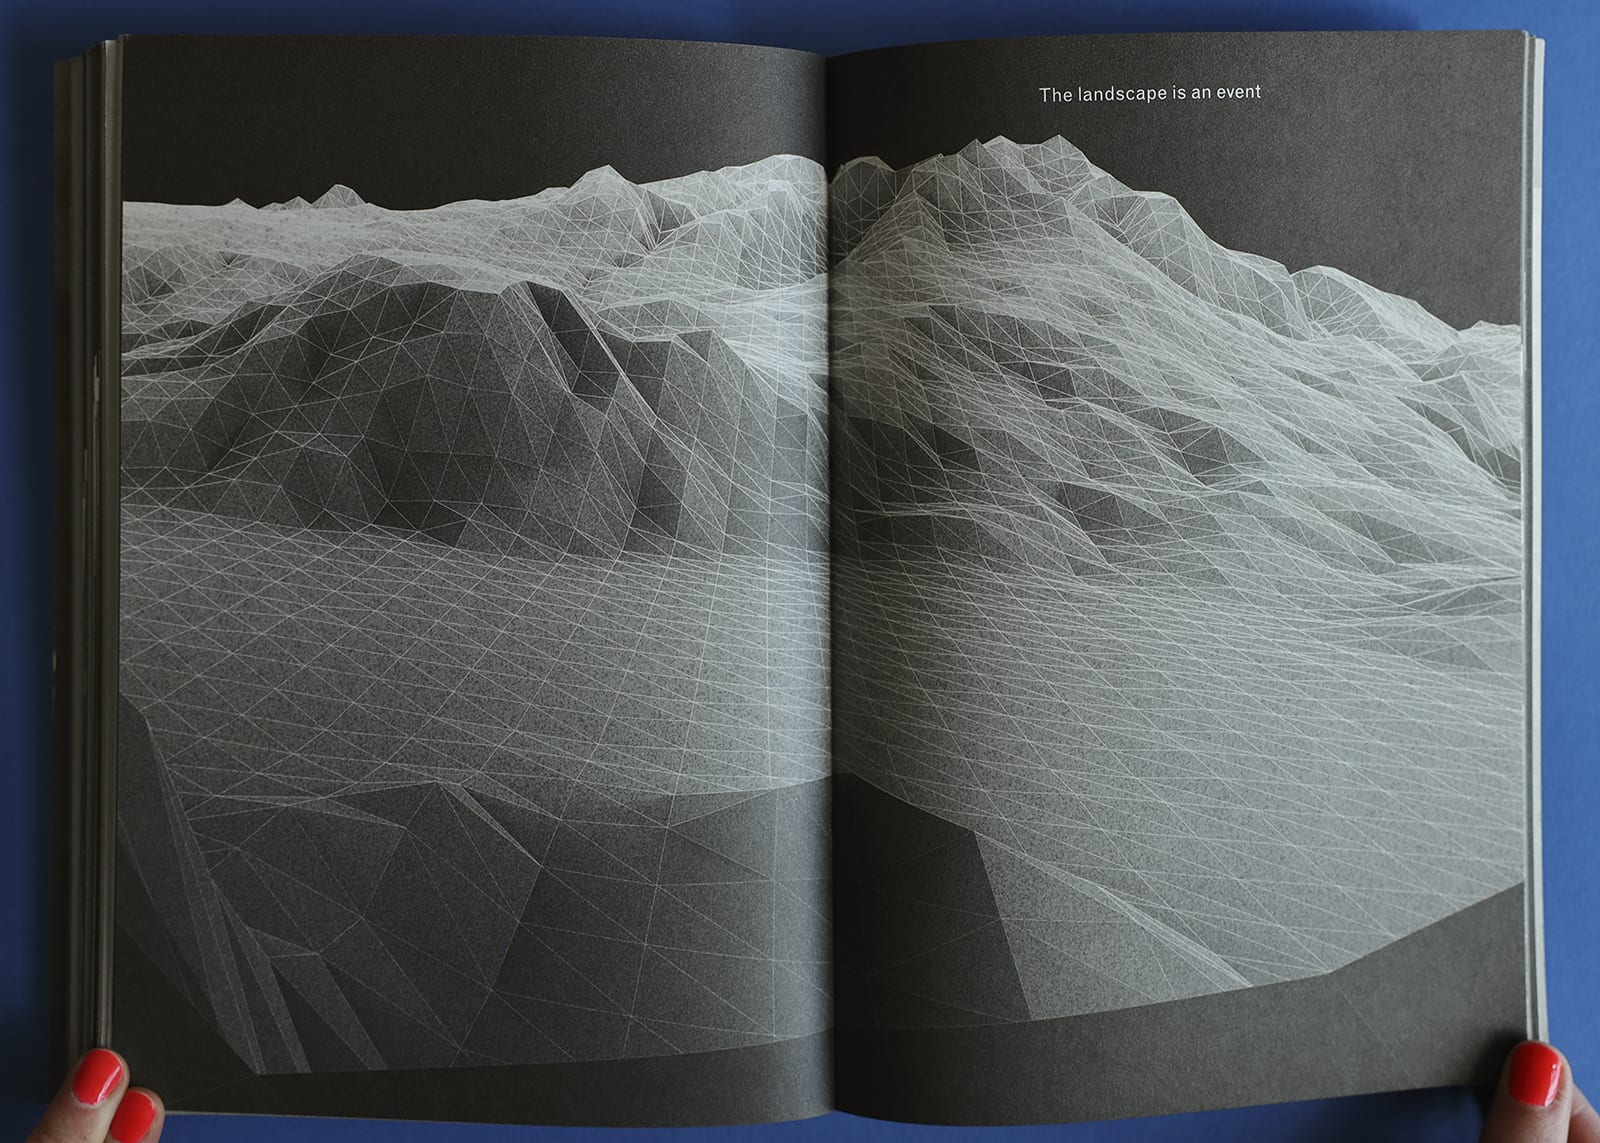 """Open-book spread of Imaginary Explosions, page 87. Above black-and-white graphic of mountain topography, text reads, """"The landscape is an event. (or is it)"""""""